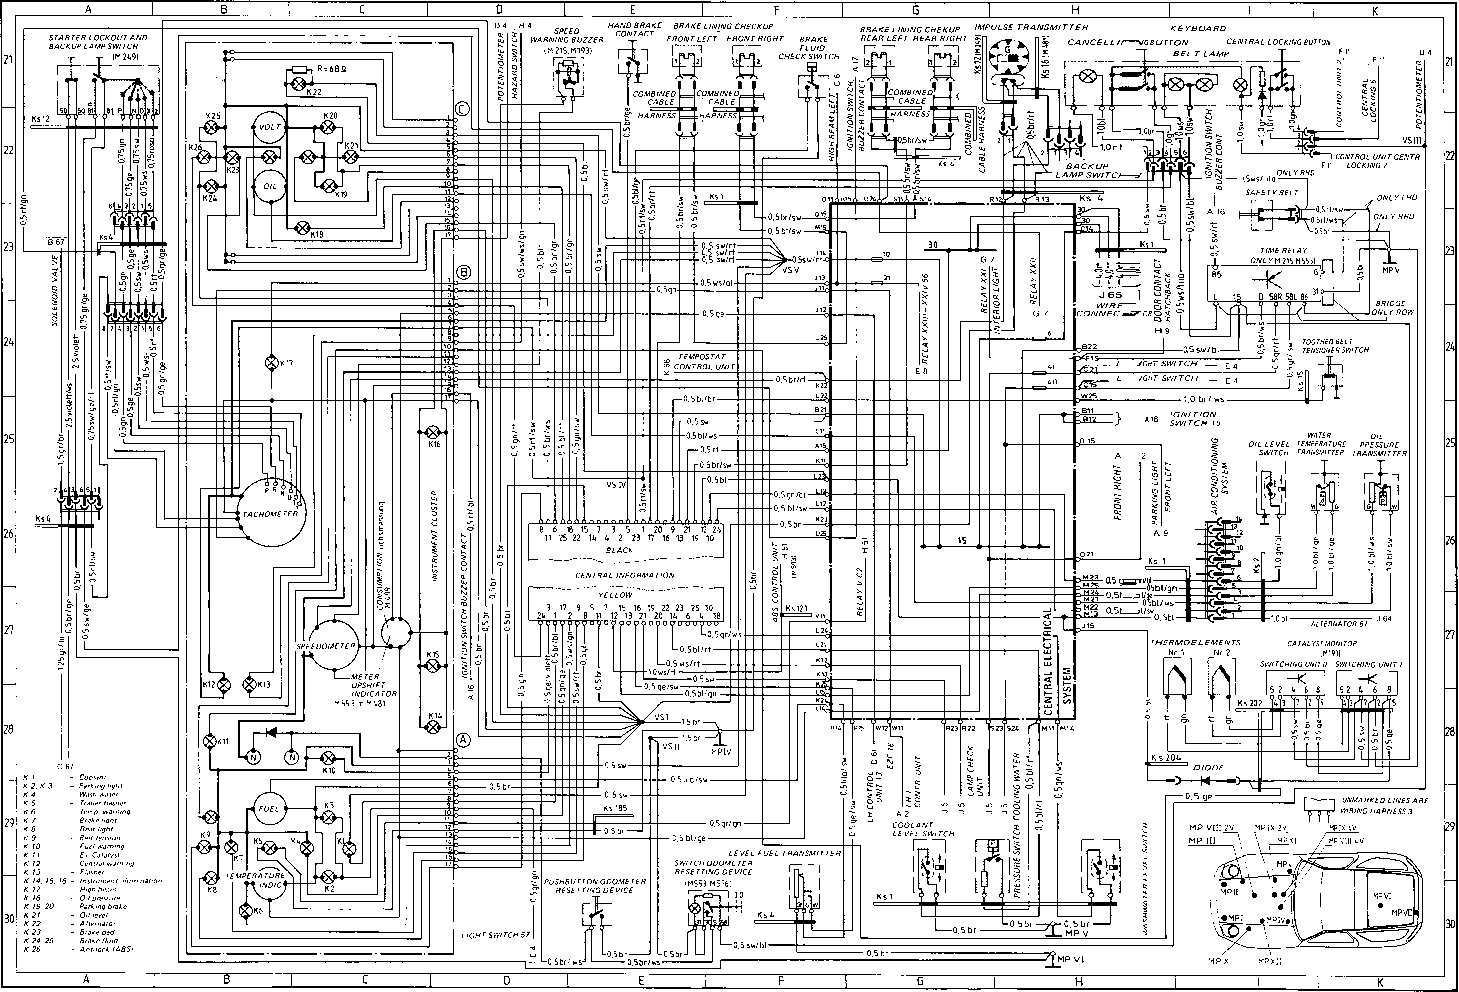 porsche 928 wiring diagram free on porsche download wirning diagrams 1984 Porsche 944 Engine Wiring Diagram porsche 928 fuel pump wiring diagram